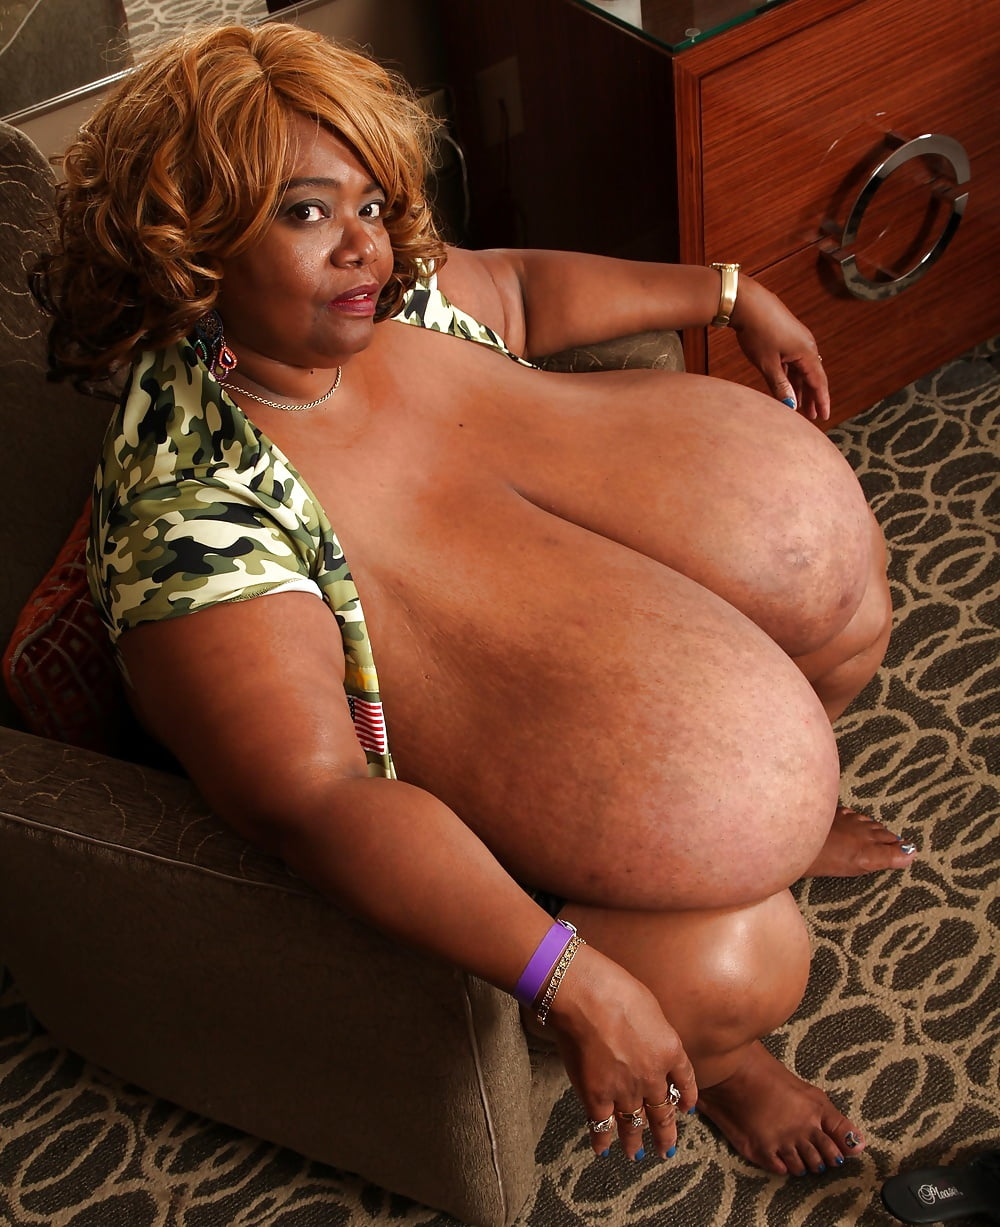 Norma stitz i'm your biggest fan